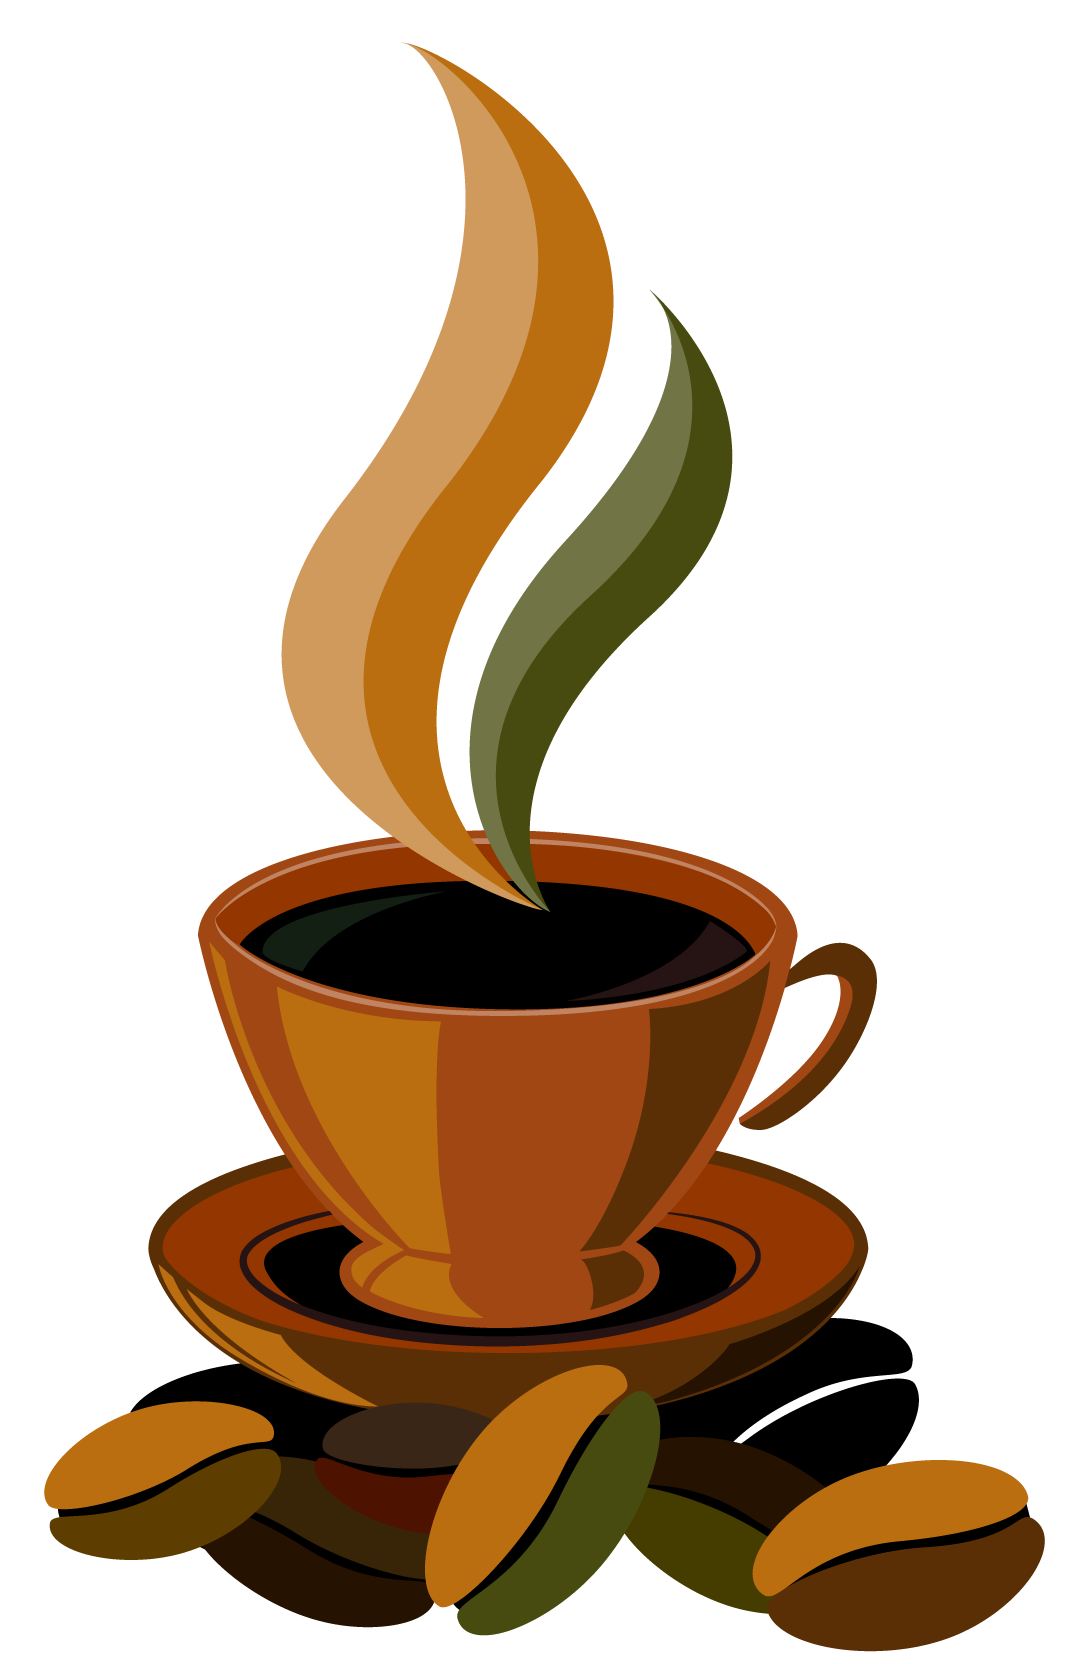 Coffee cup vector png. Clipart gallery yopriceville high